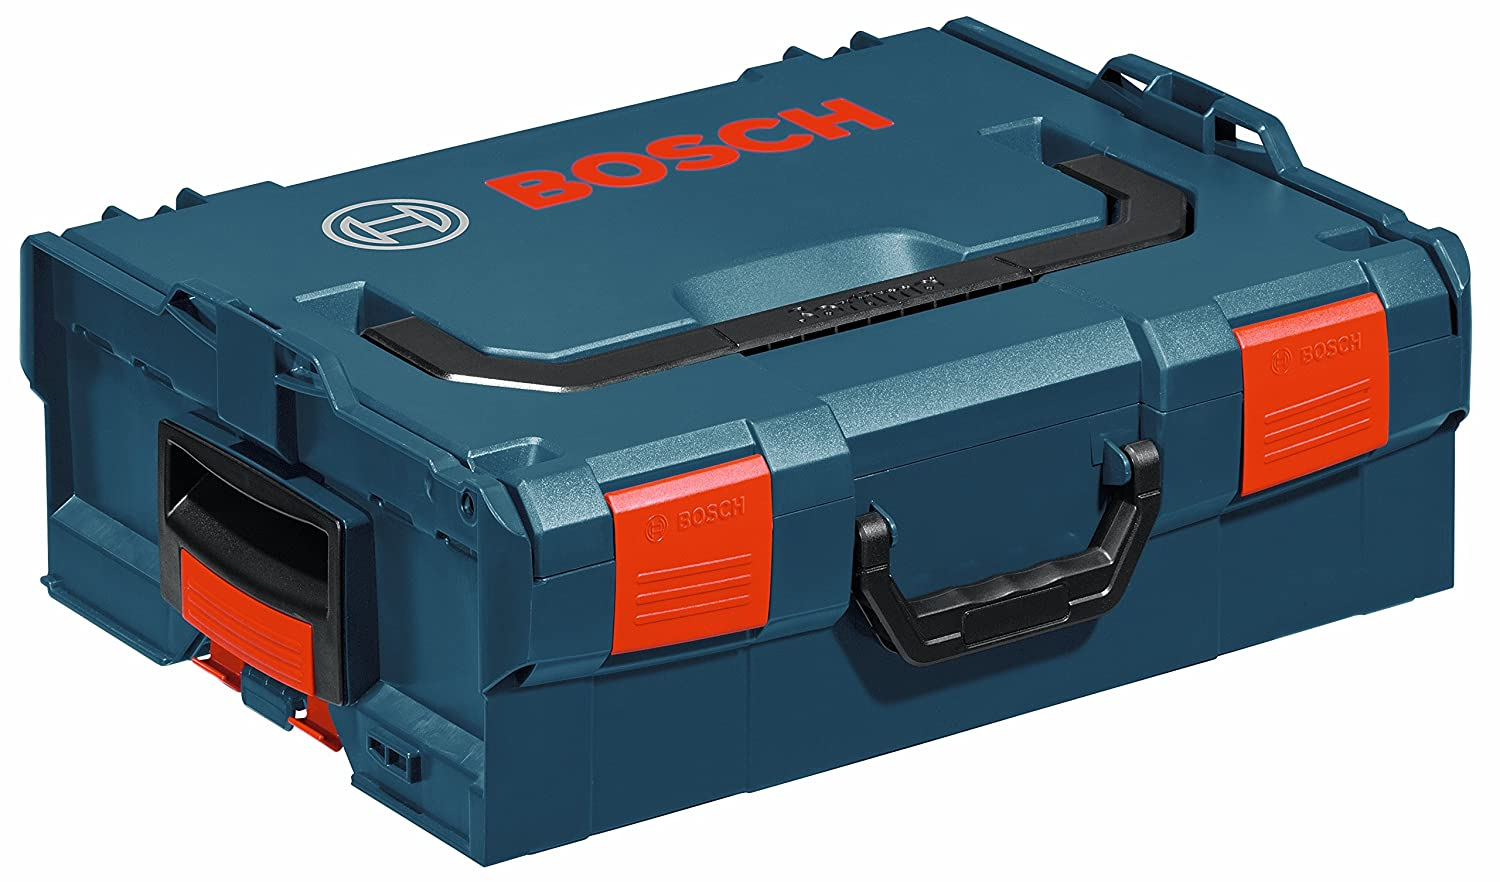 Bosch L-BOXX-2 6 In. x 14 In. x 17.5 In. Stackable Tool Storage Case